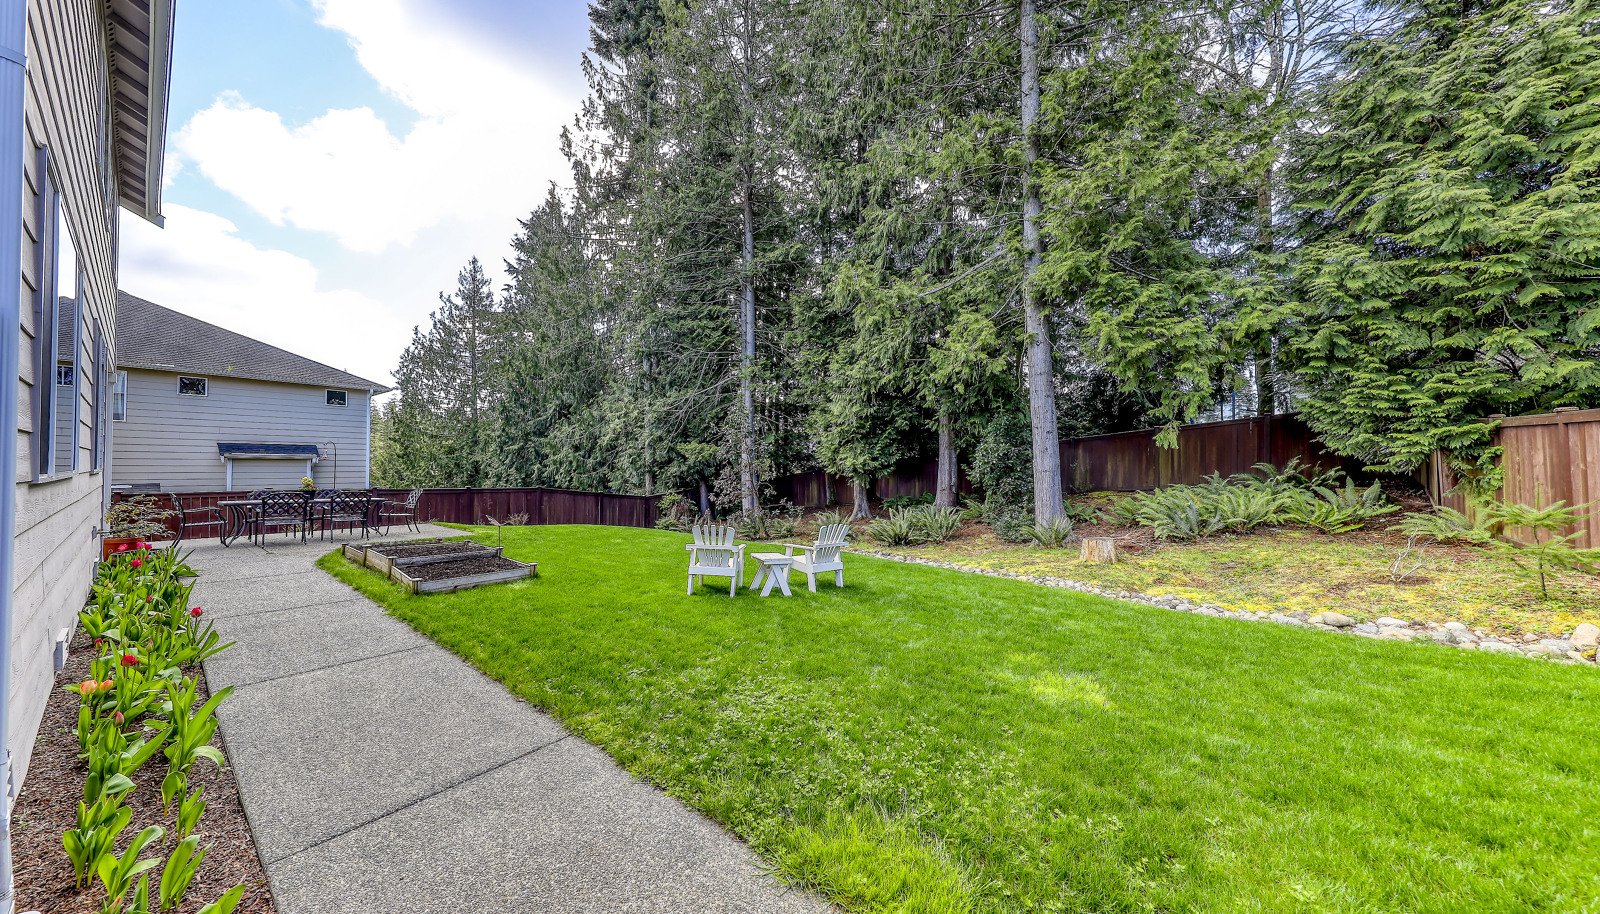 Rare and hard to find this large  yard this close to town in a cul-de-sac neighborhood!